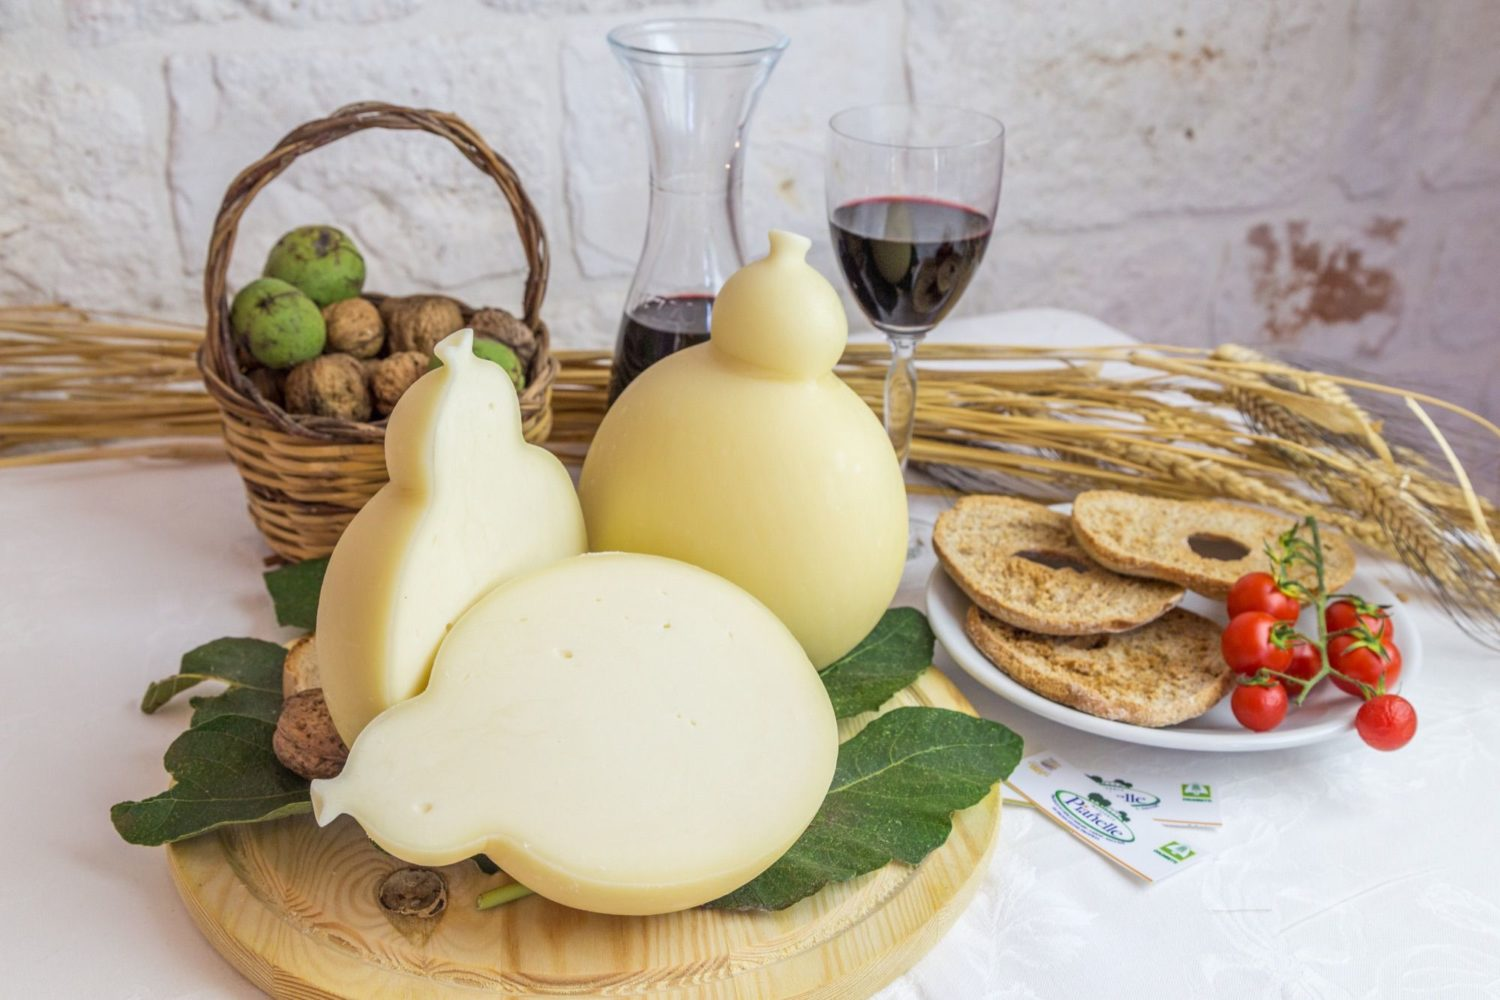 Caciocavallo hard cheese